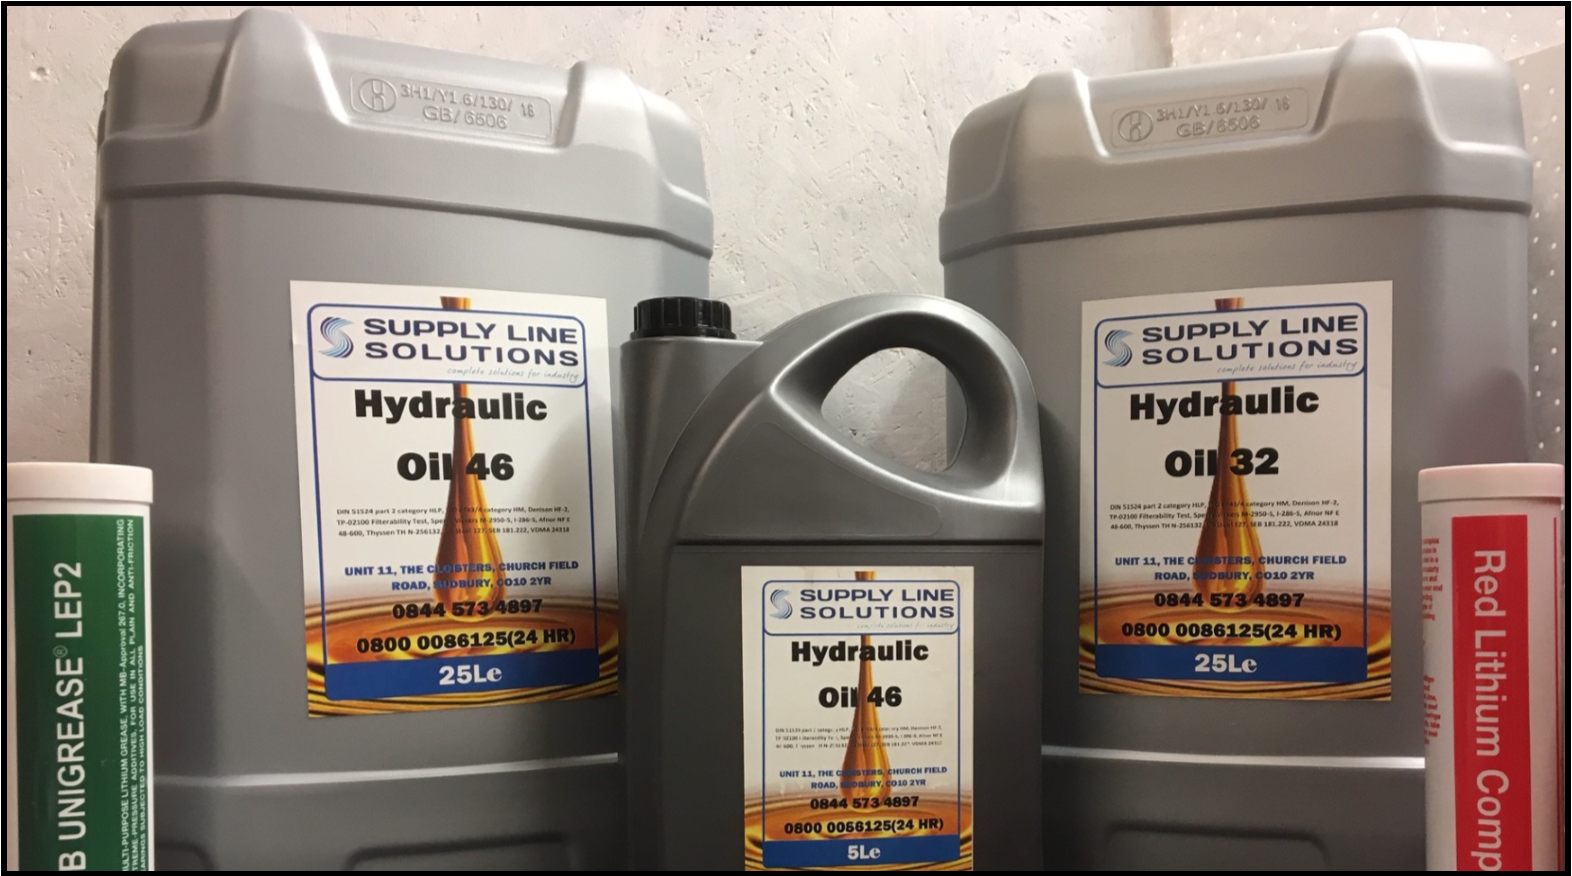 Hydraulic Lubricants and Oils Image. Link to More Details